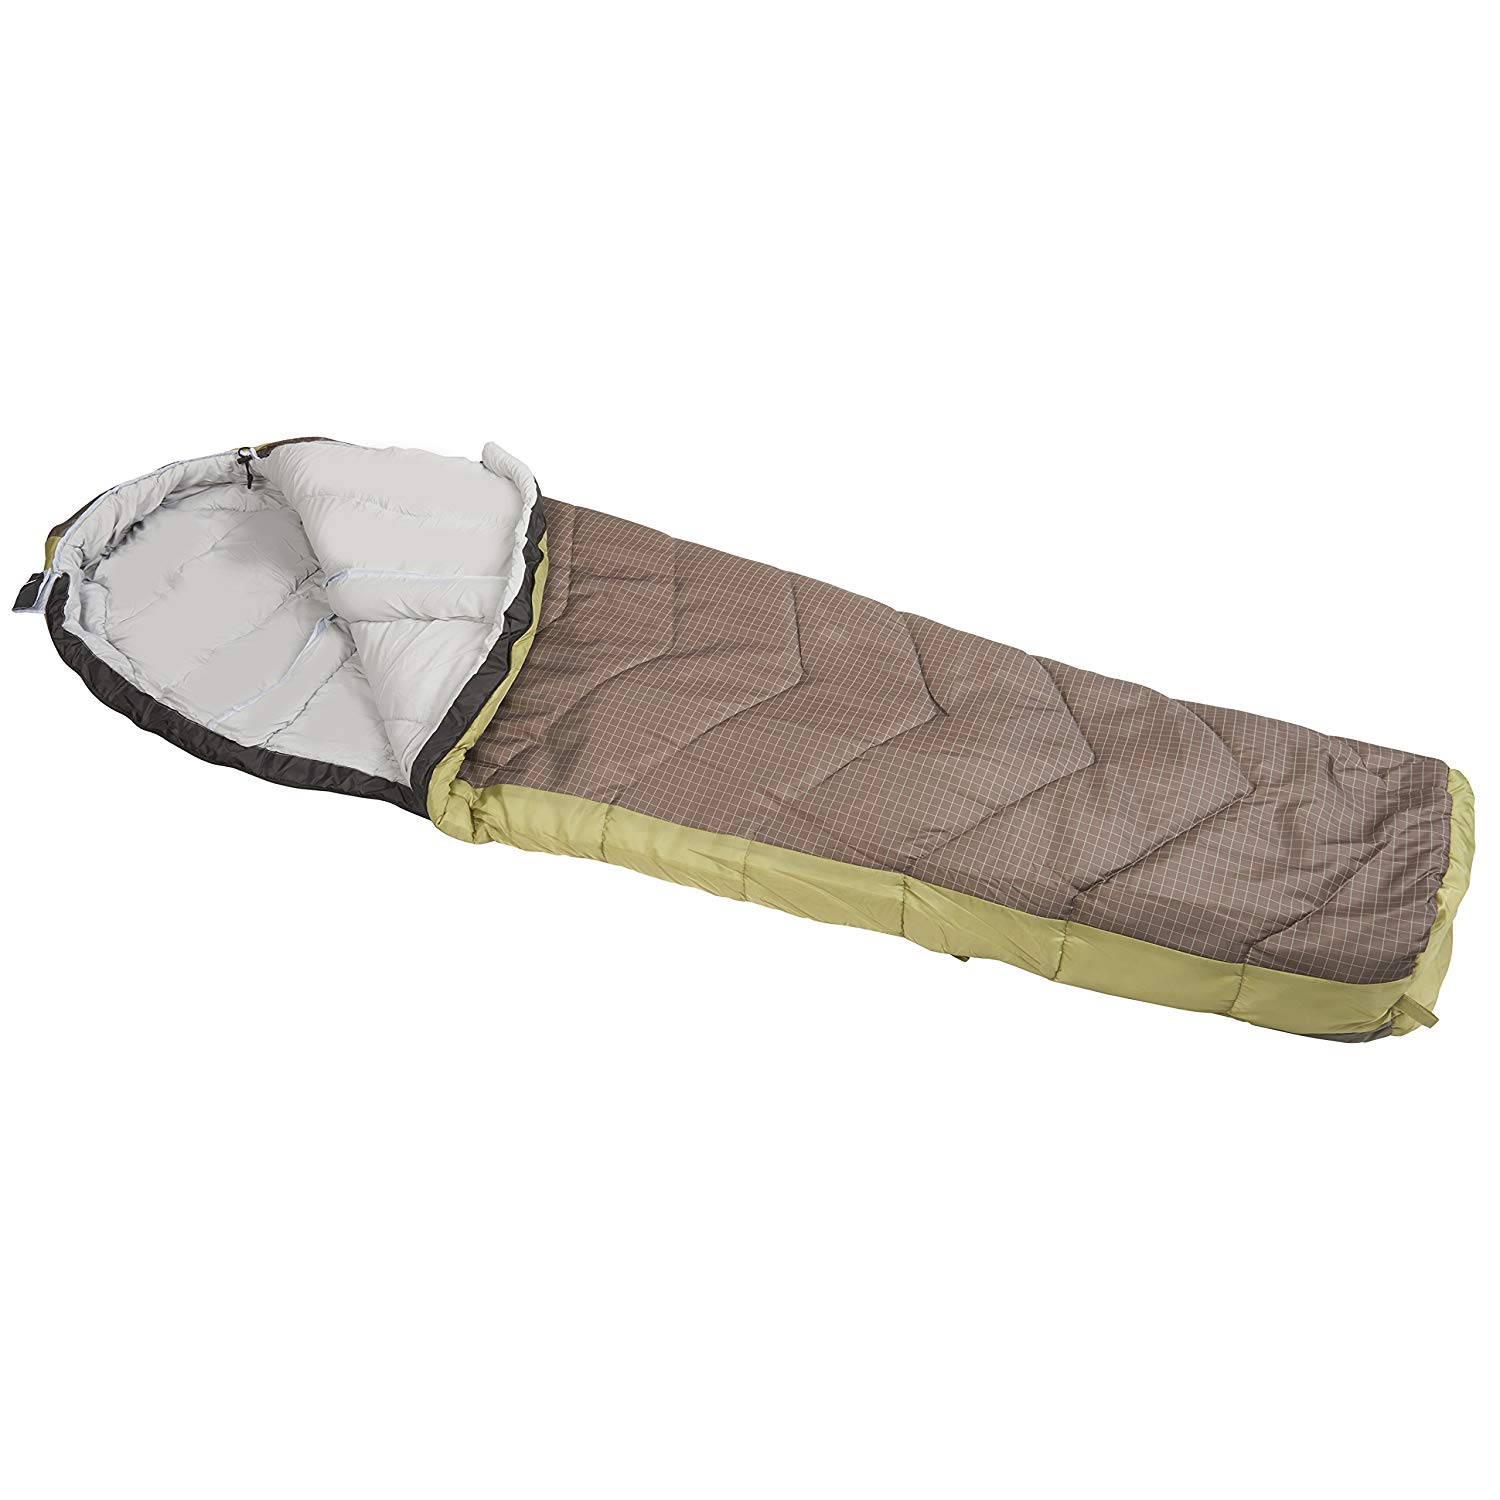 Suisse Sport Alpine Best Backpacking Sleeping Bag under 100